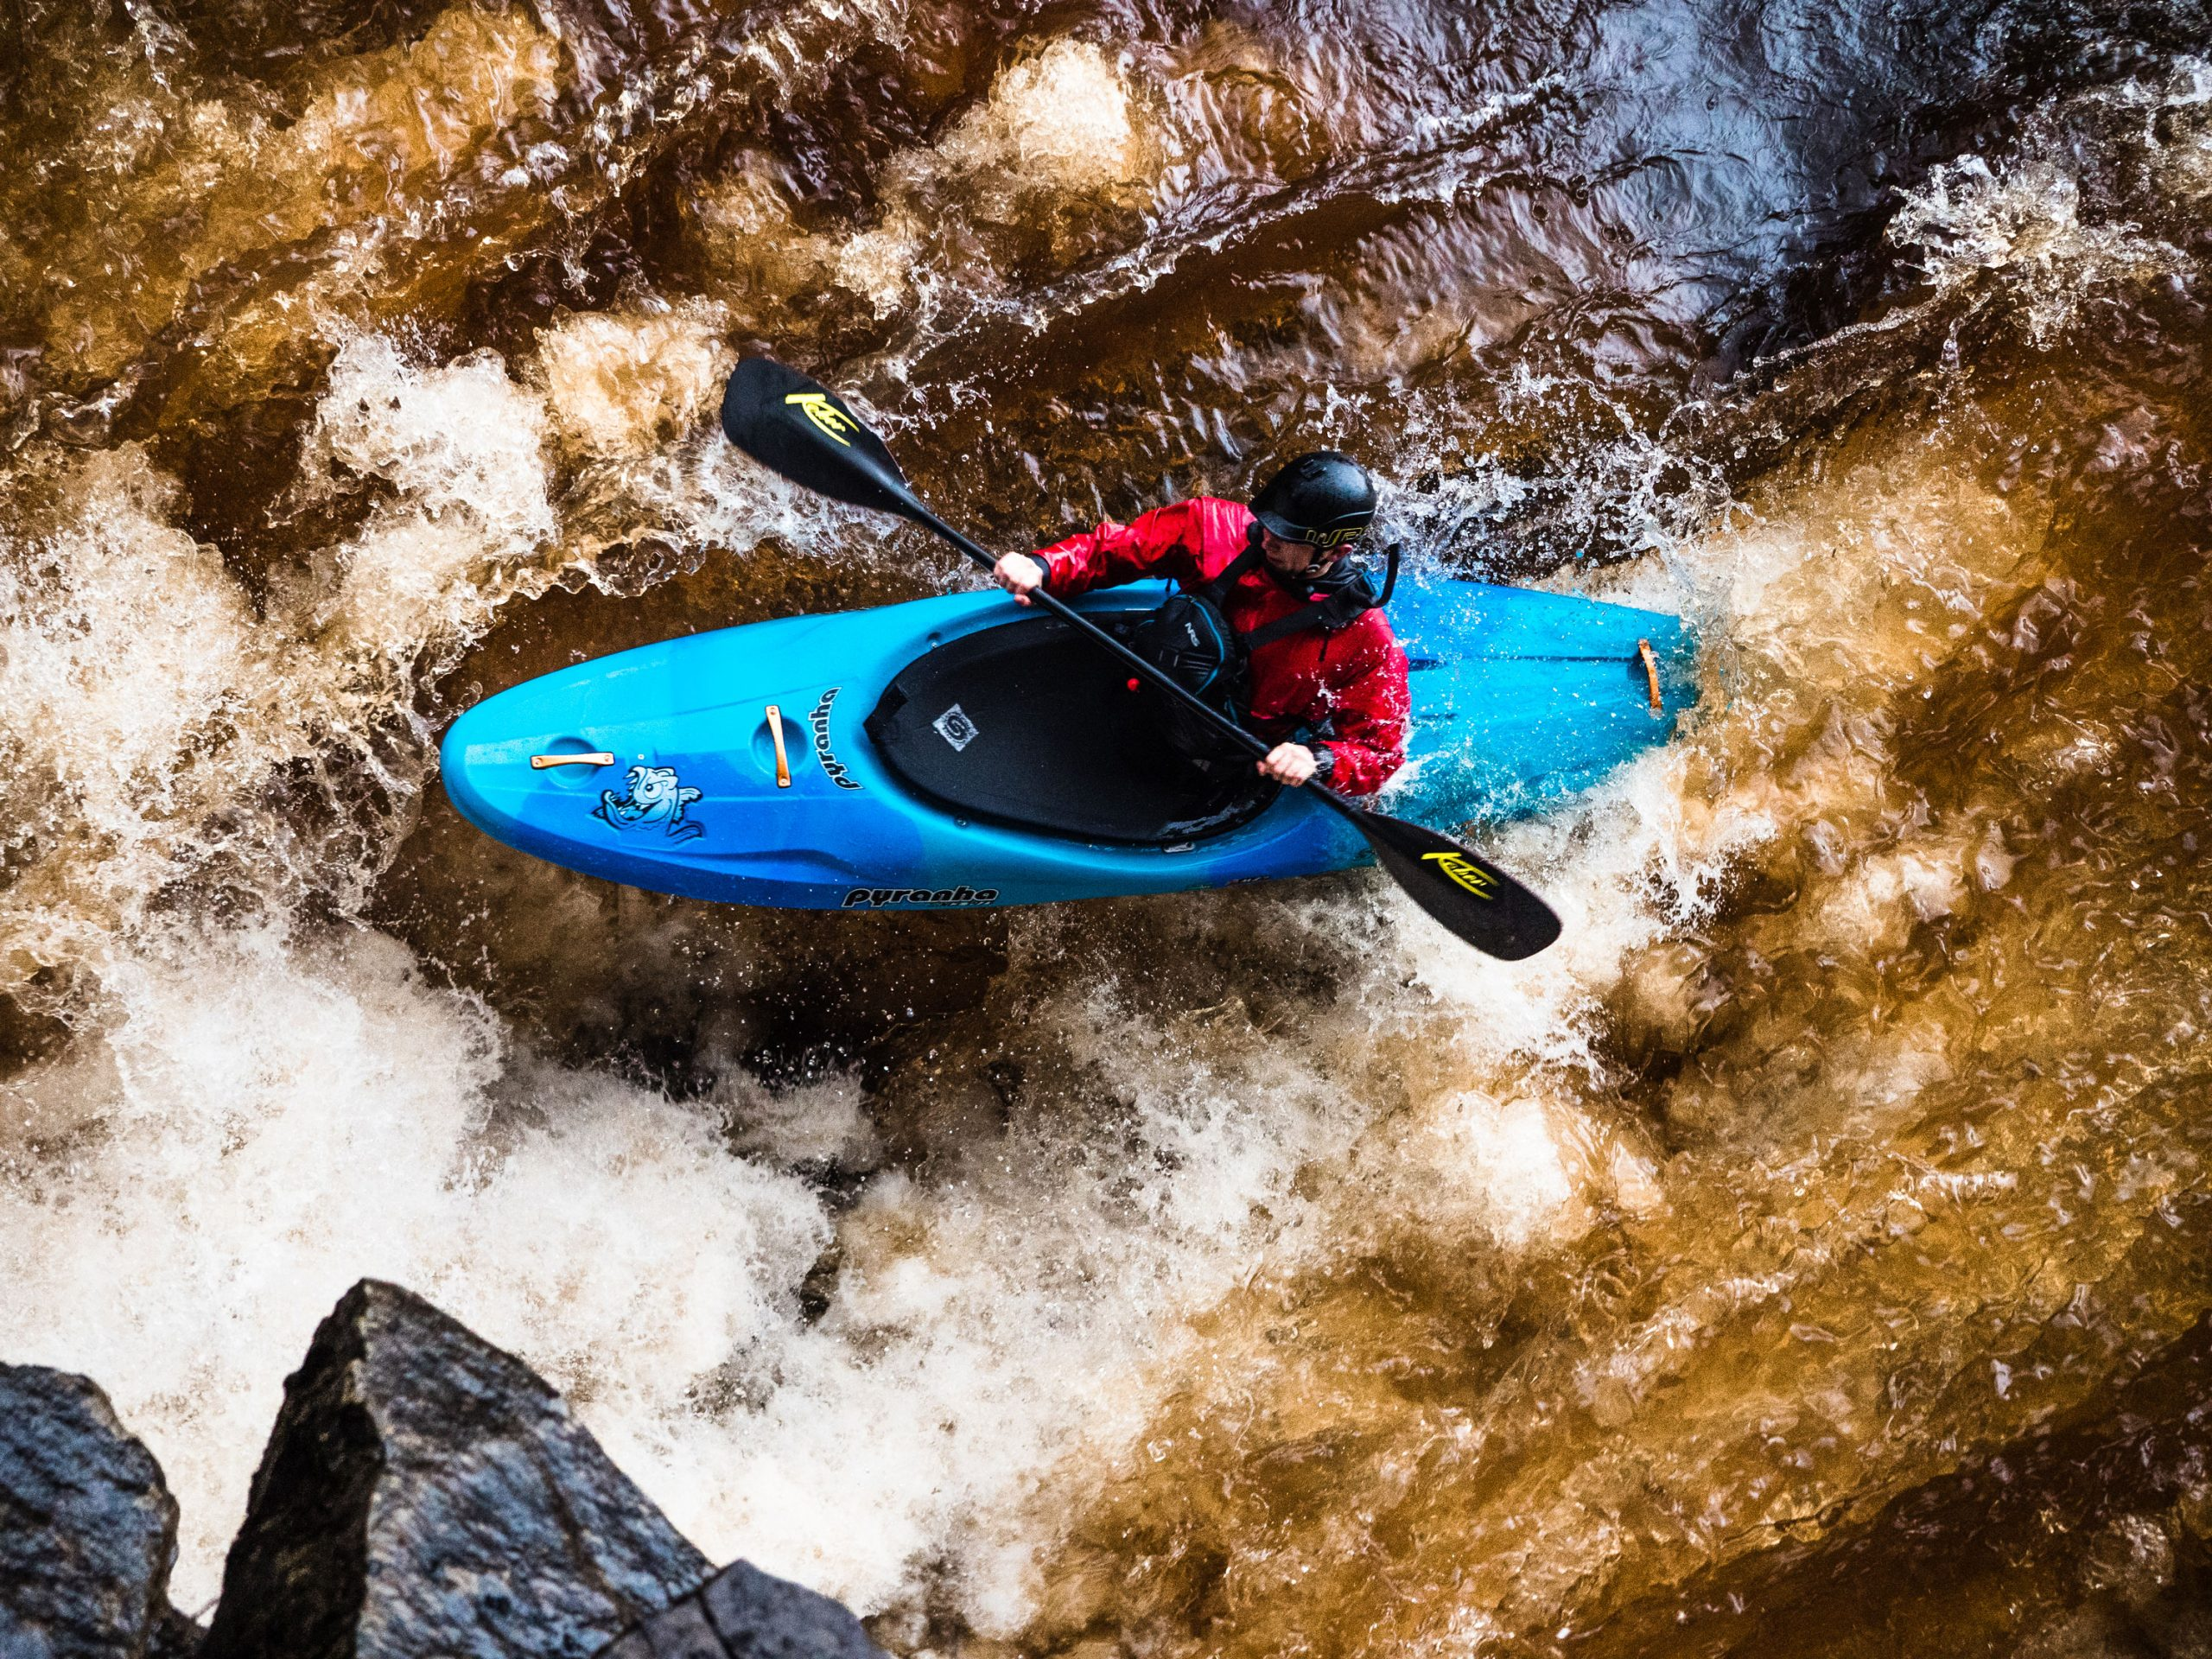 David Bain paddling a Scorch Large in Blue Crush